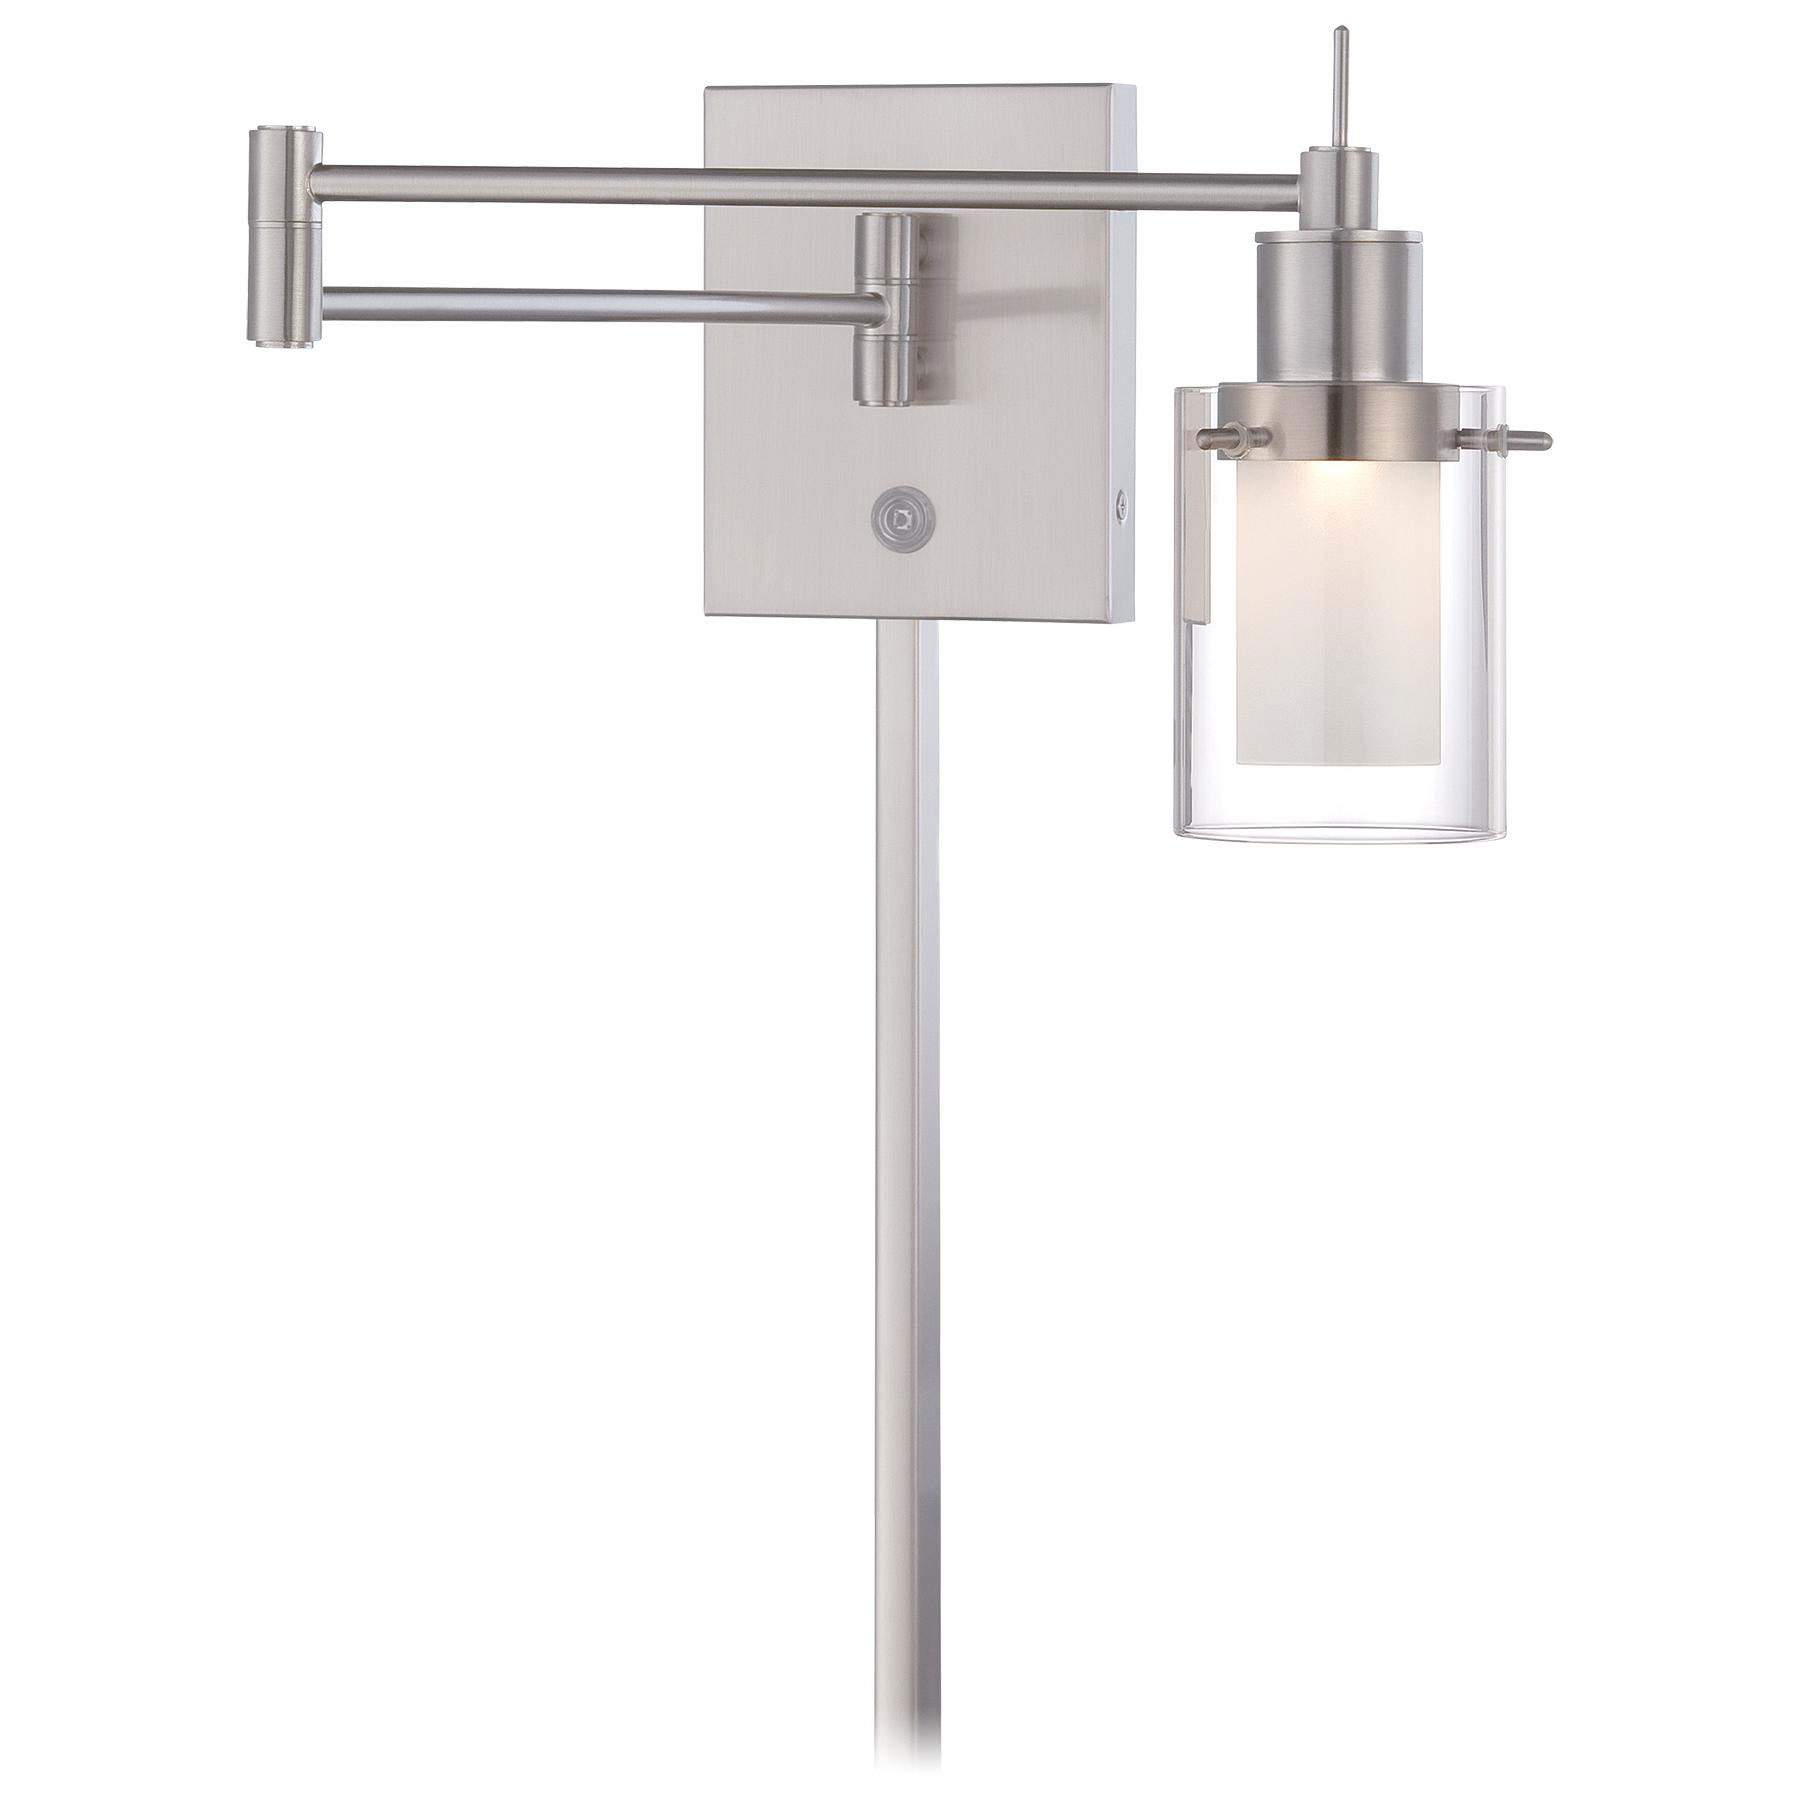 p4511 led swing arm wall sconce by george kovacs p4511084